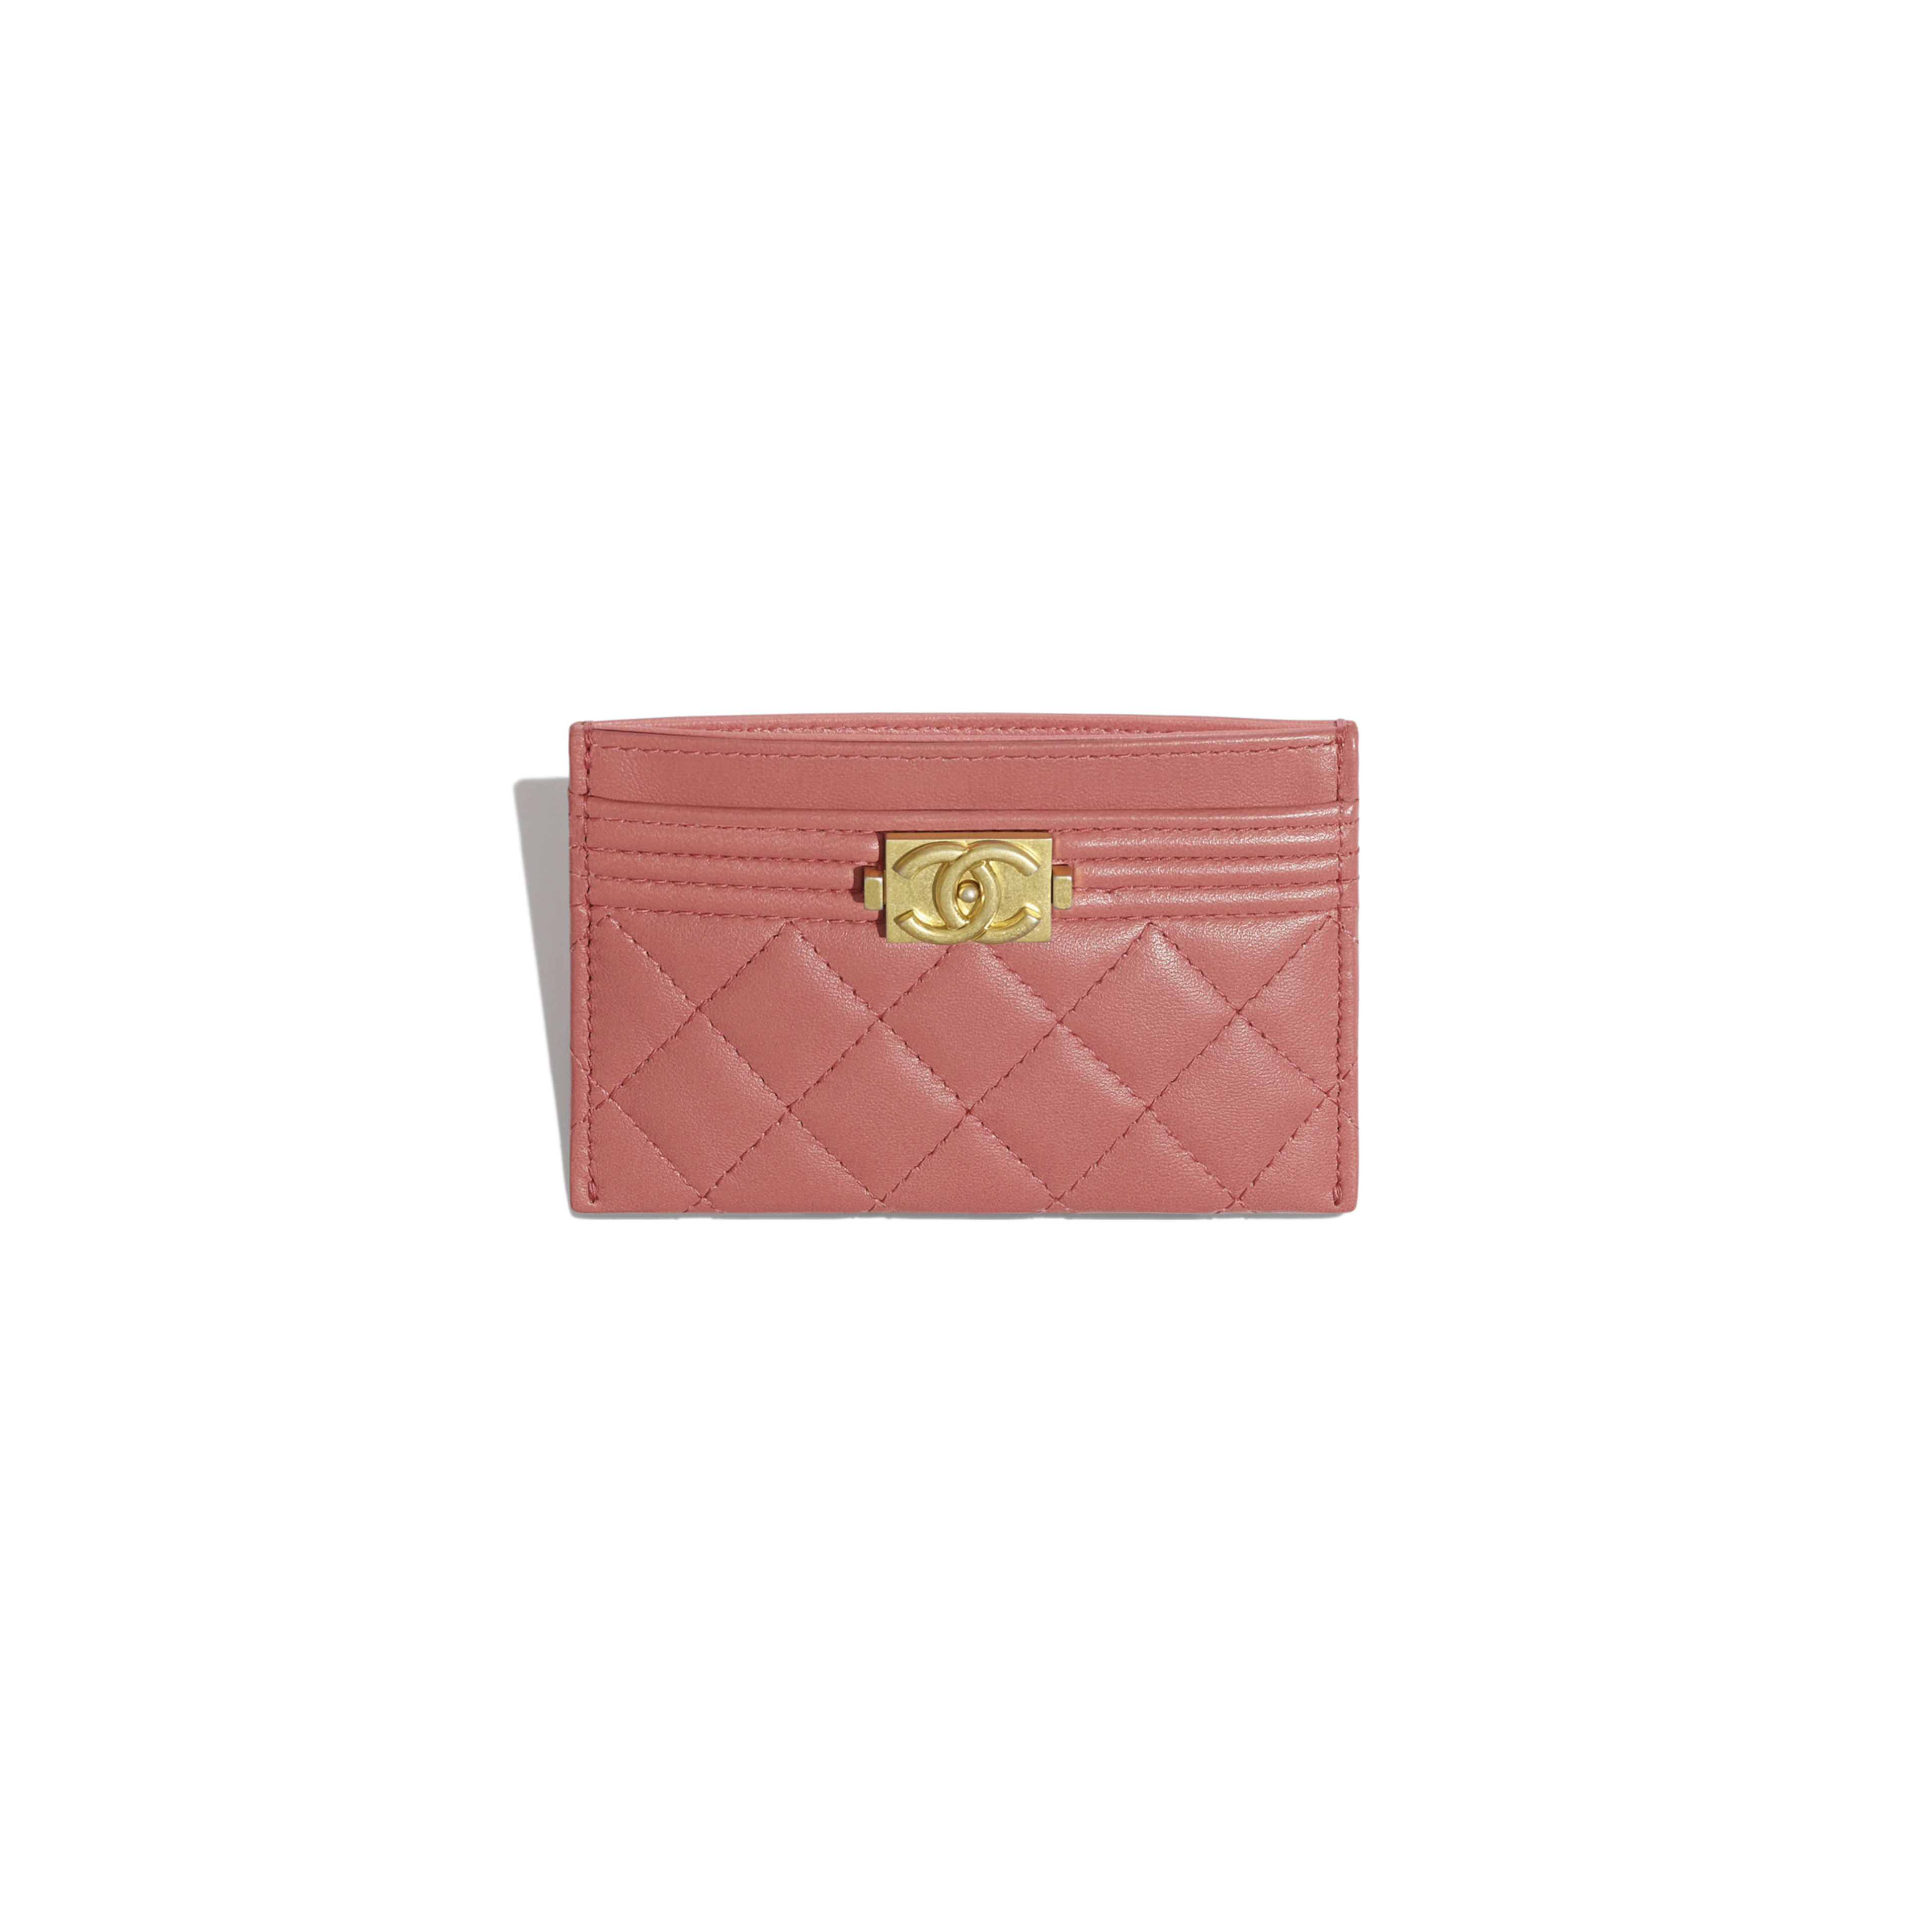 BOY CHANEL Card Holder - Pink - Lambskin - Other view - see full sized version